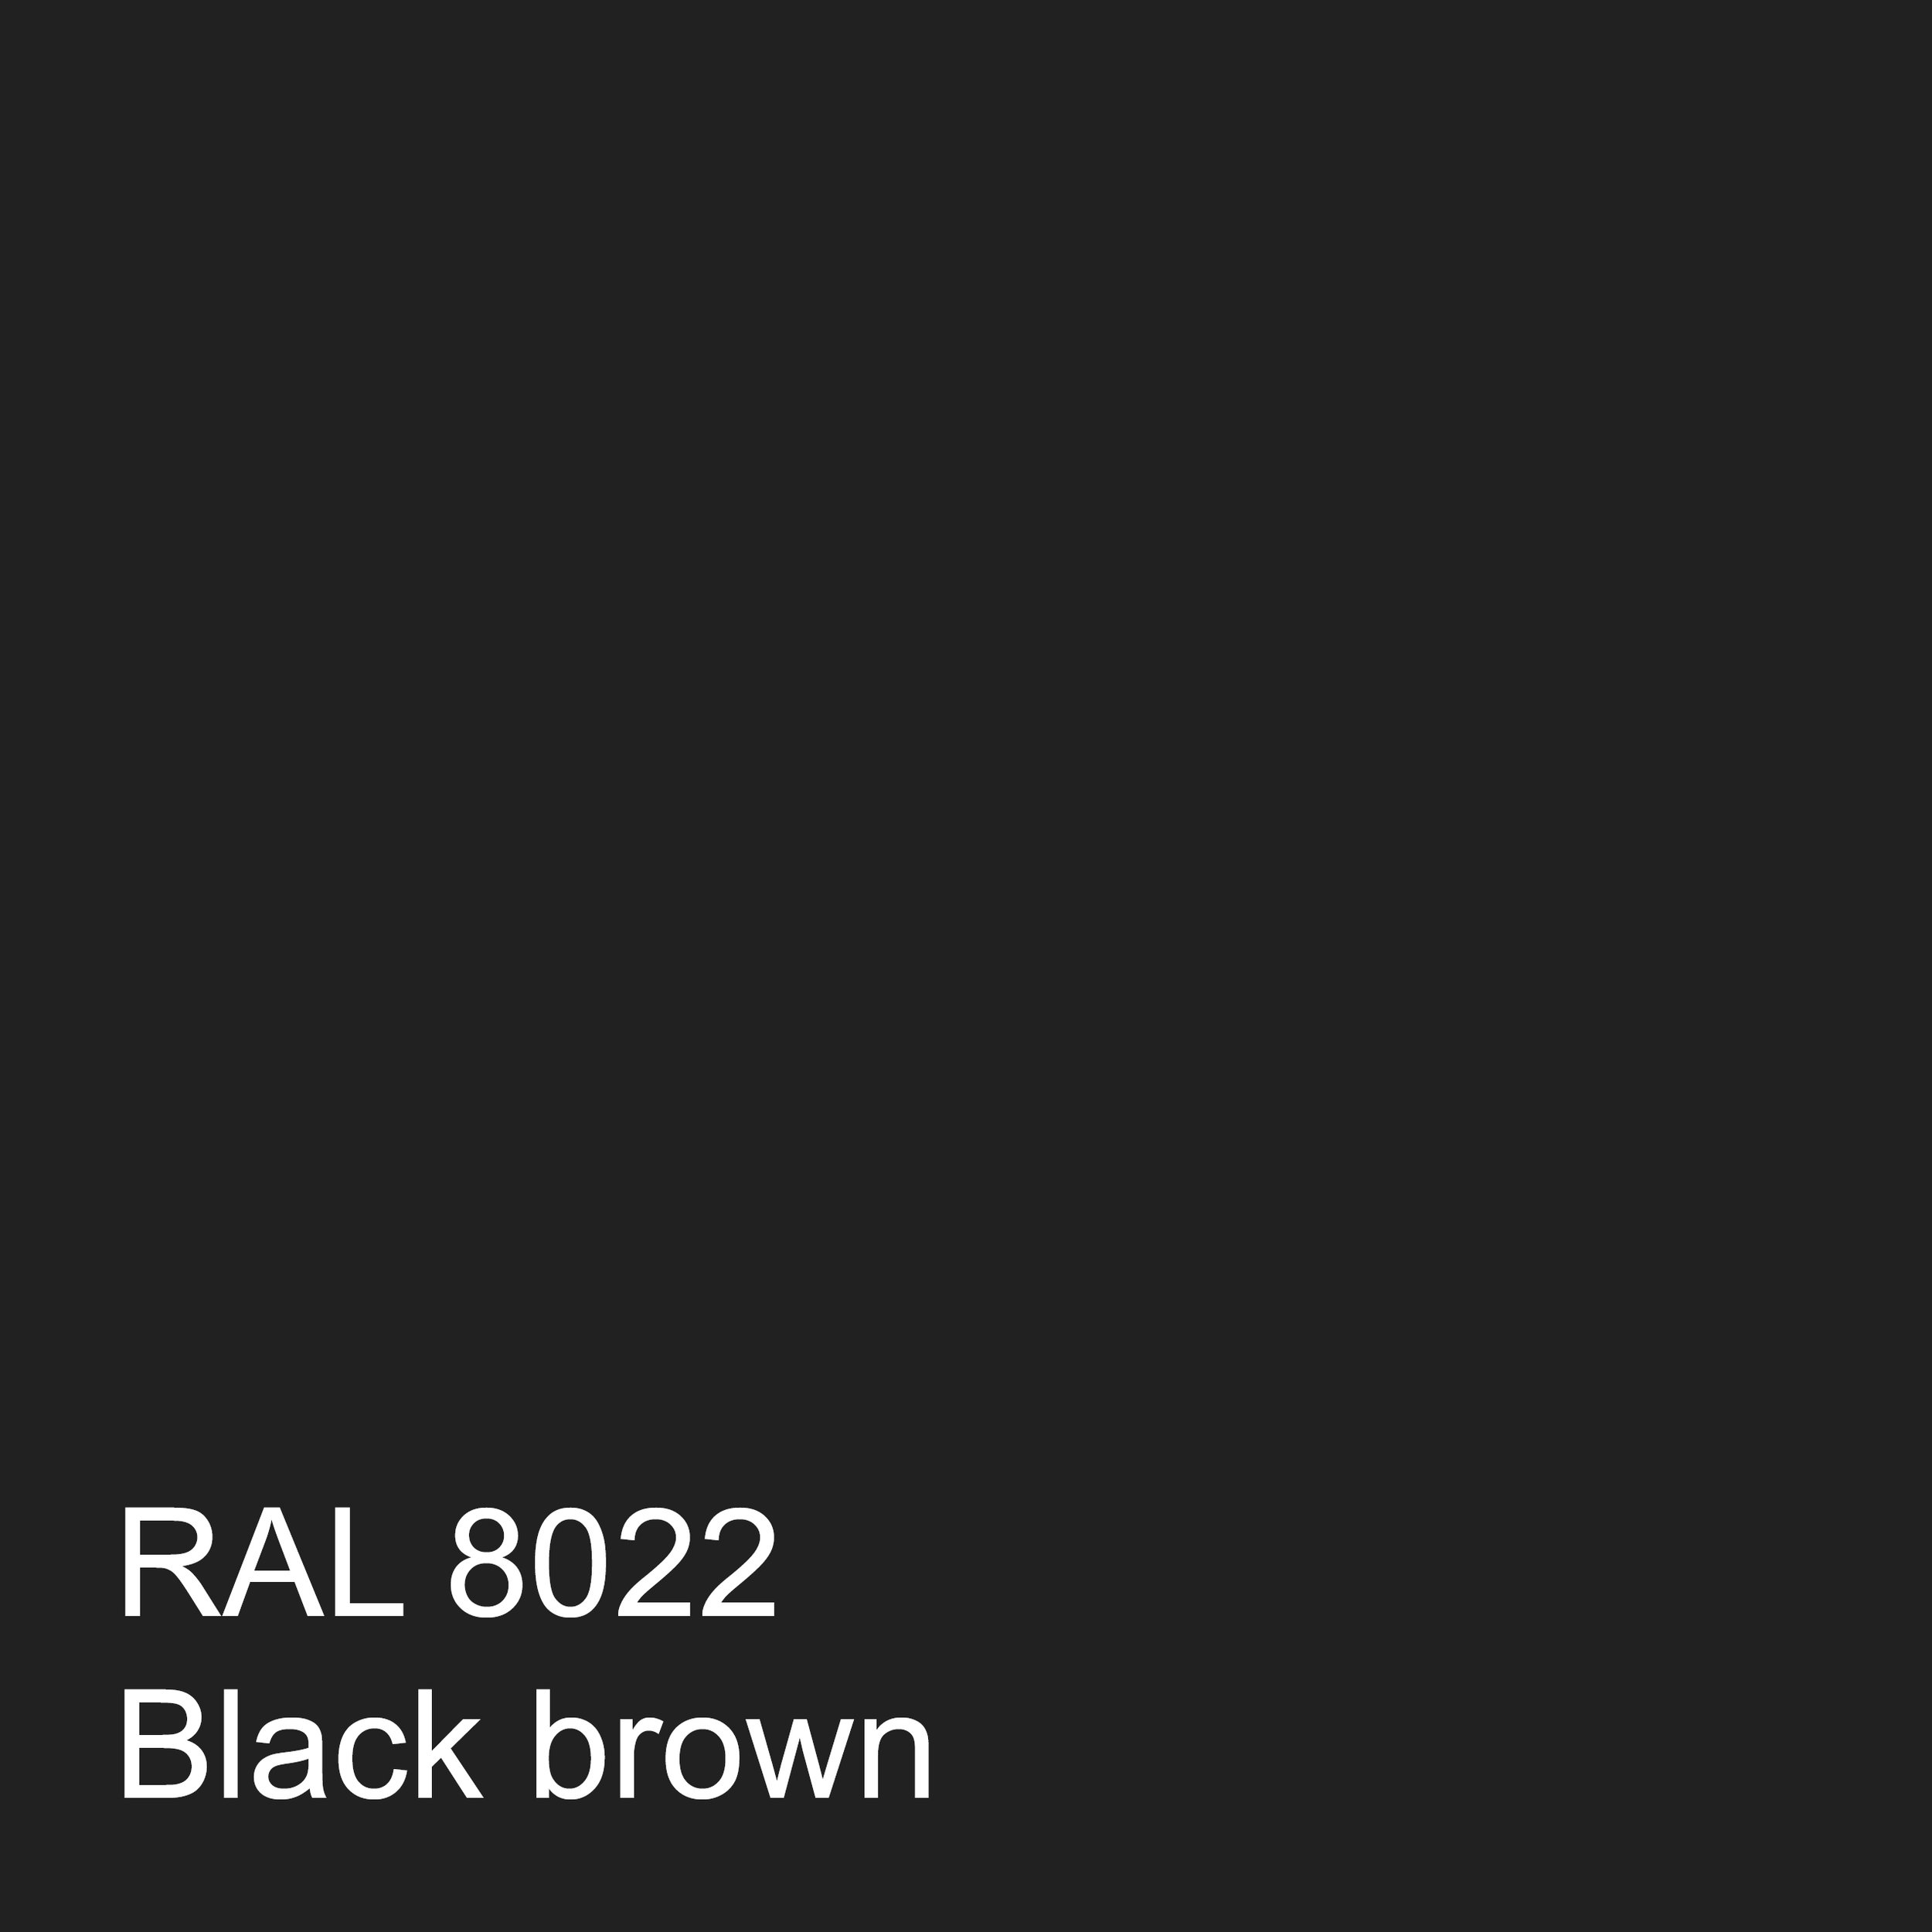 RAL 8022 BLACK BROWN.jpg